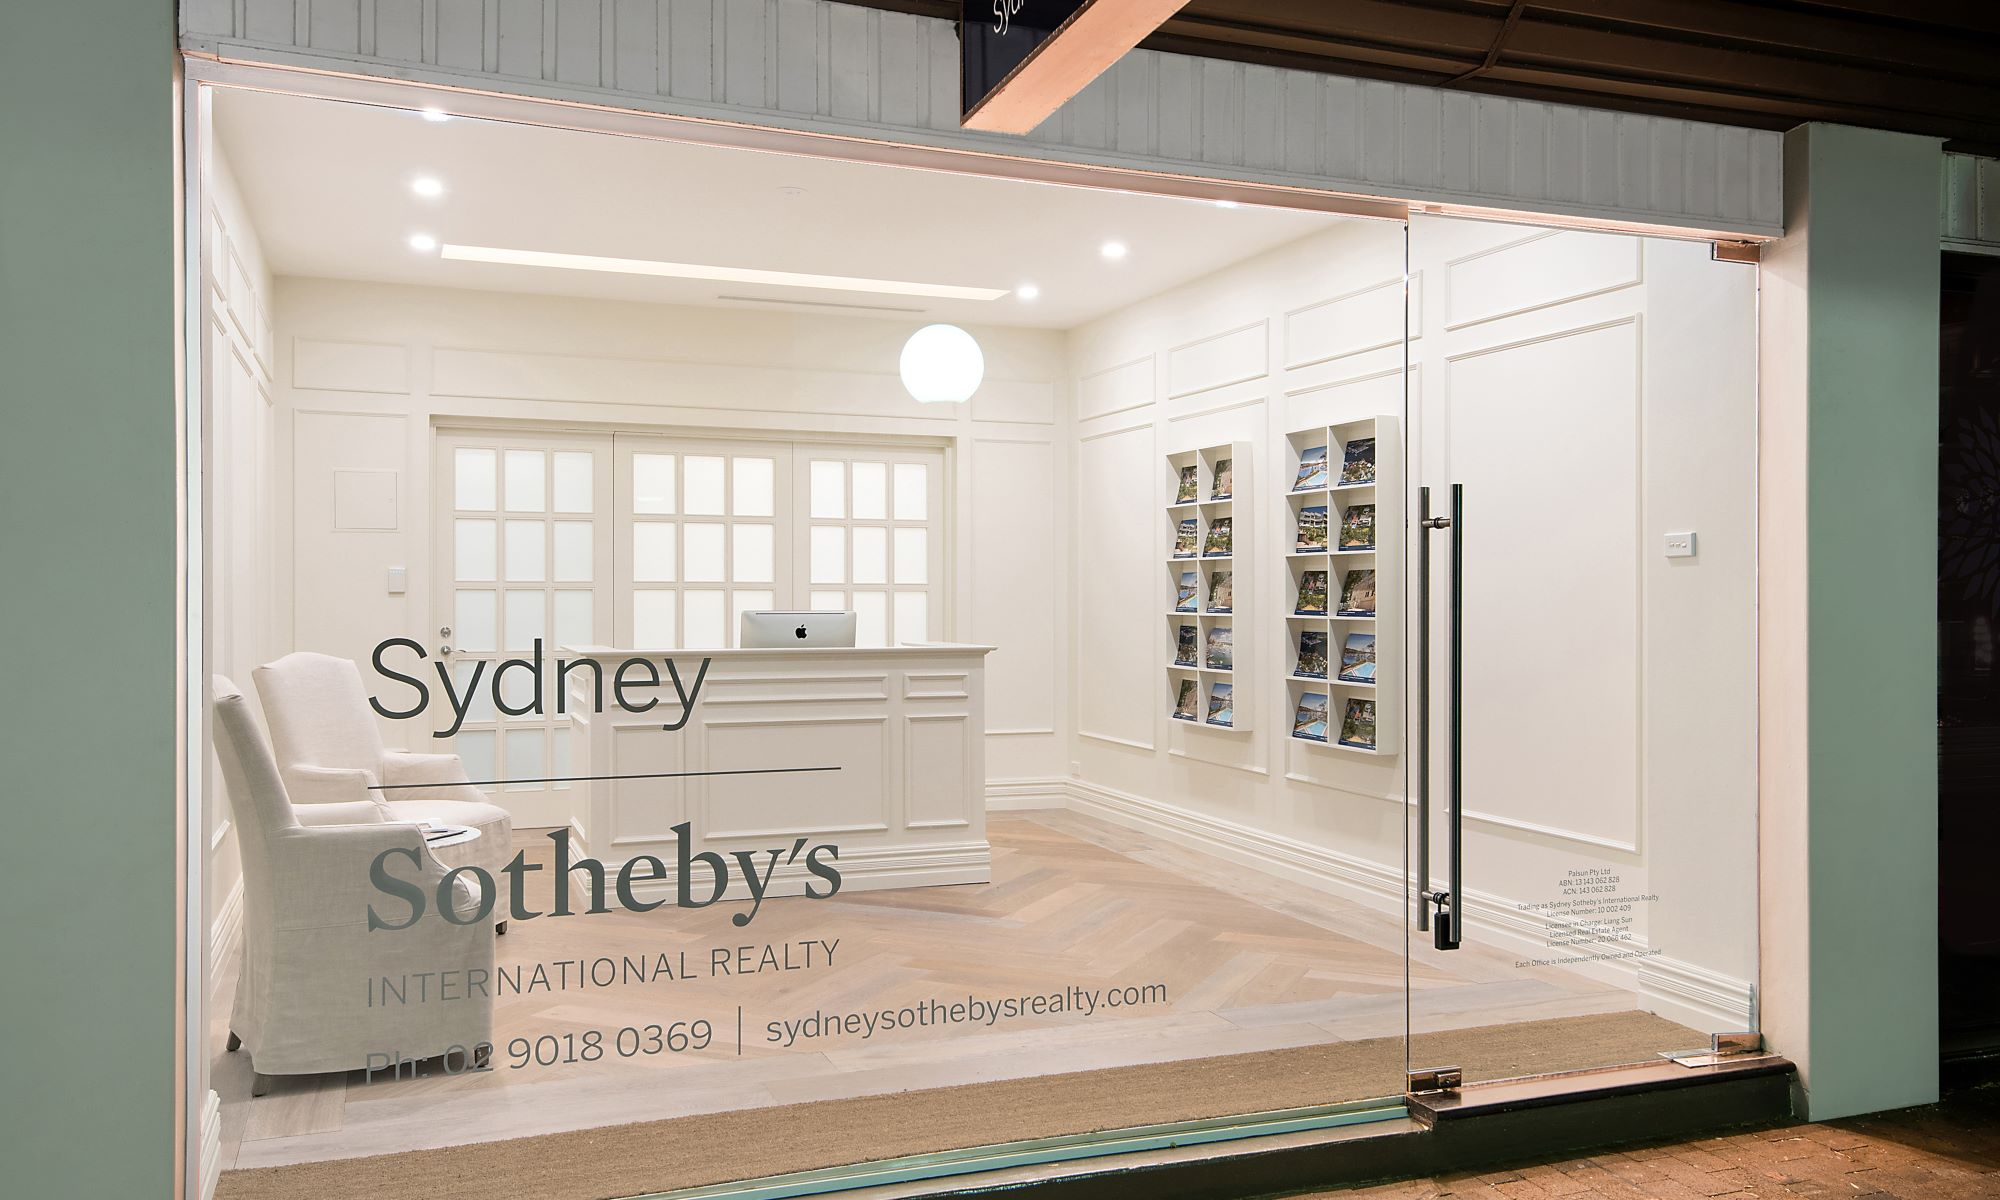 Sydney Sotheby's International Realty